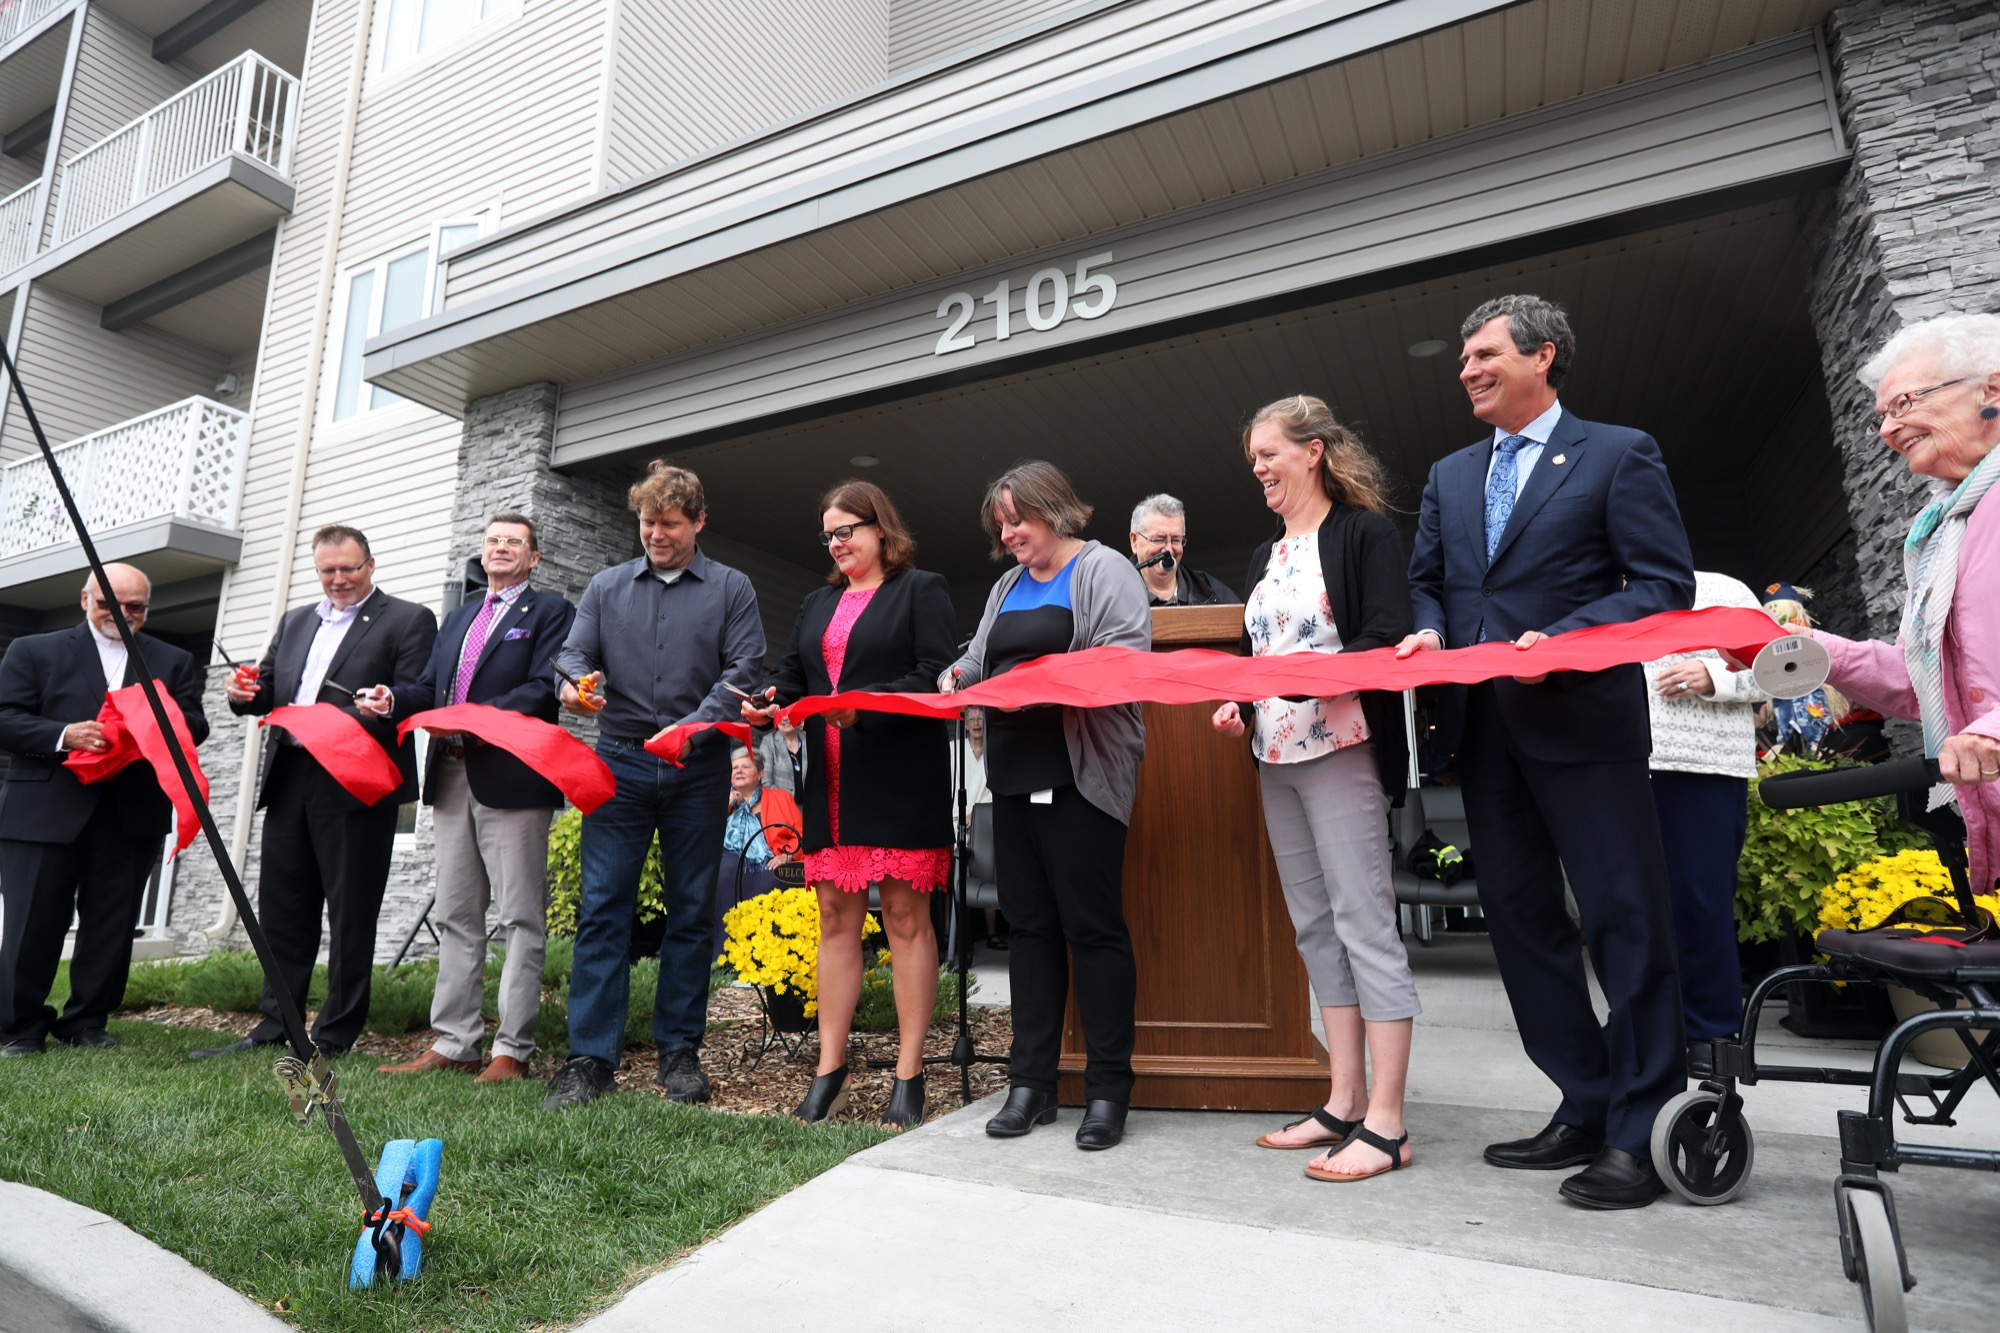 Dignitaries cut the ribbon to unveil the Western Manitoba Seniors Non-Profit Housing Co-op seniors housing complex at 2105 Brandon Ave. on Tuesday. The $14-million project features 48 affordable housing suites and 15 at market rates.